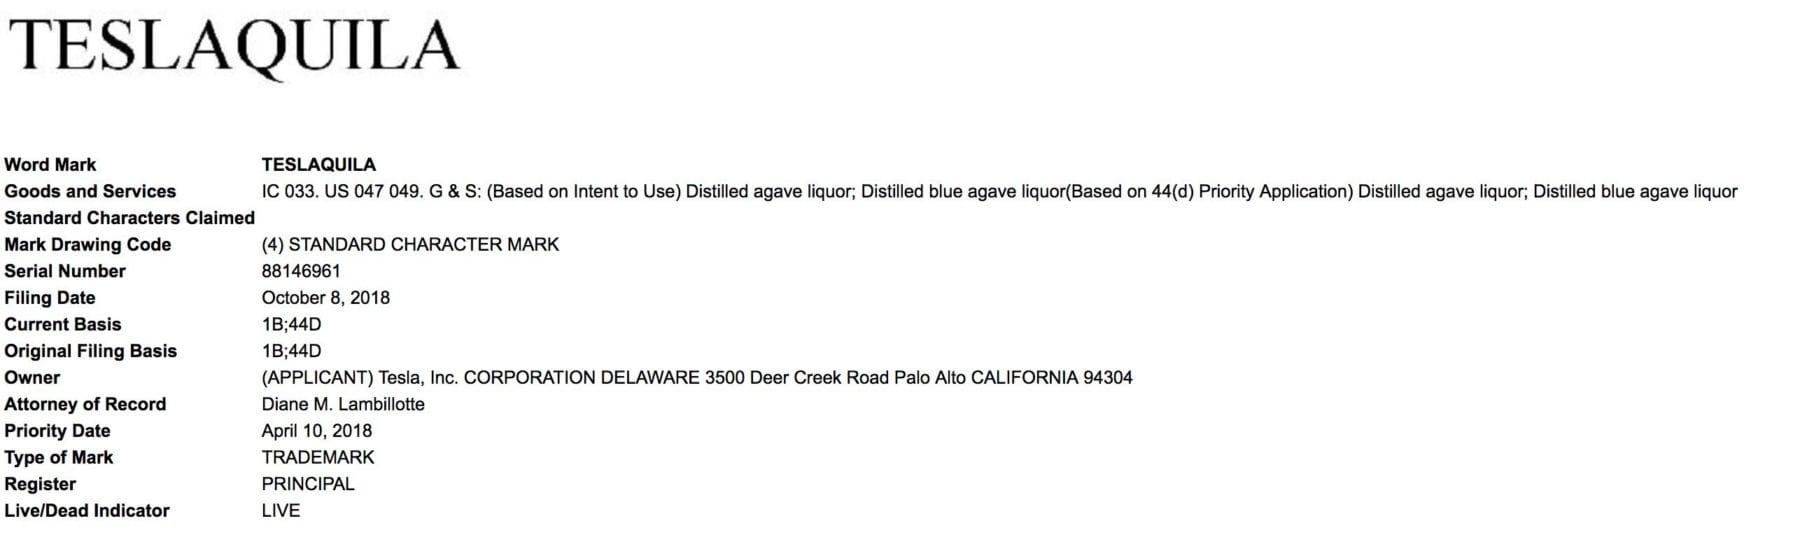 latest Tesla news: Teslaquila Trademark